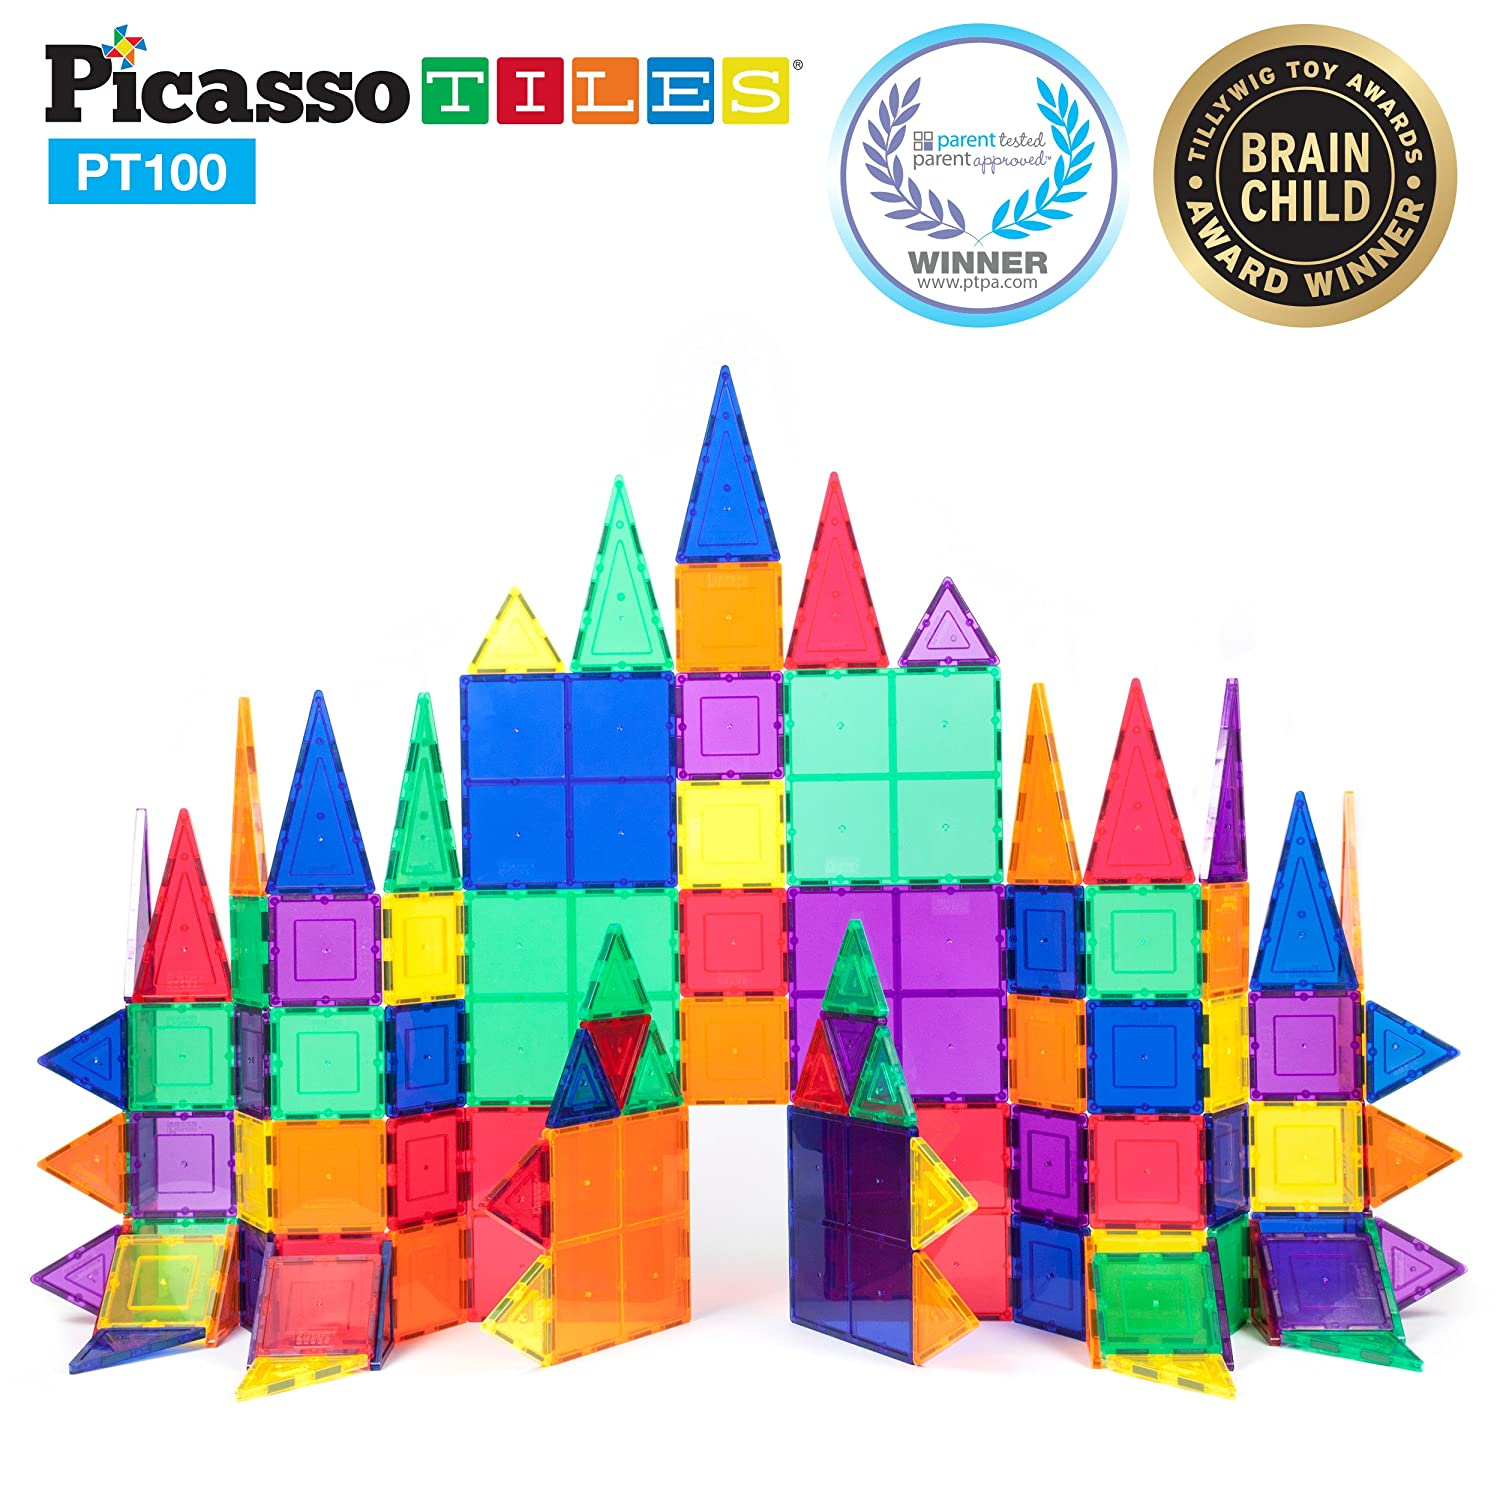 PicassoTiles 100 Piece Set 100pcs Magnet Building Tiles Clear Magnetic 3D Building Blocks Construction Playboards, Creativity beyond Imagination, Inspirational, Recreational, Educational Conventional Review